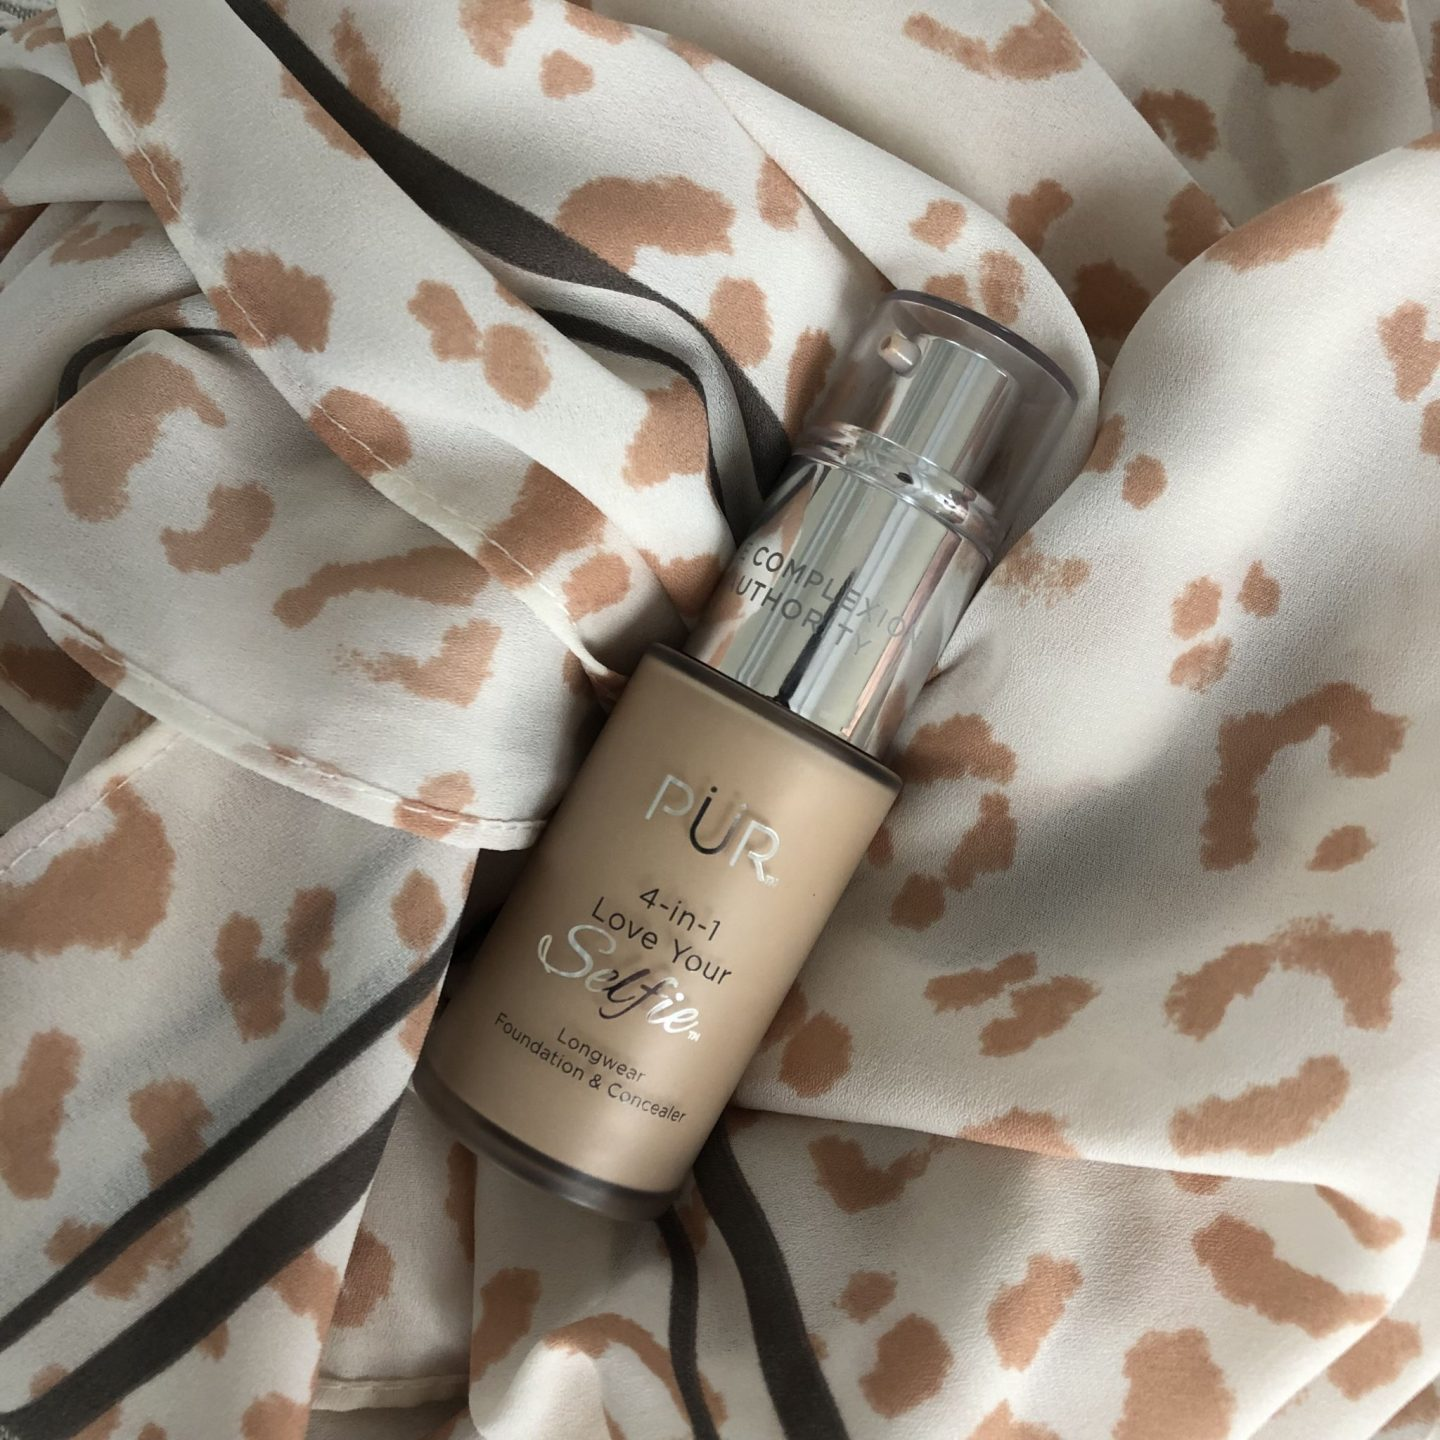 NC blogger Rebecca Lately shares her cruelty free August Beauty Favorites.  Here are just a few simple products that add value to her beauty routine.